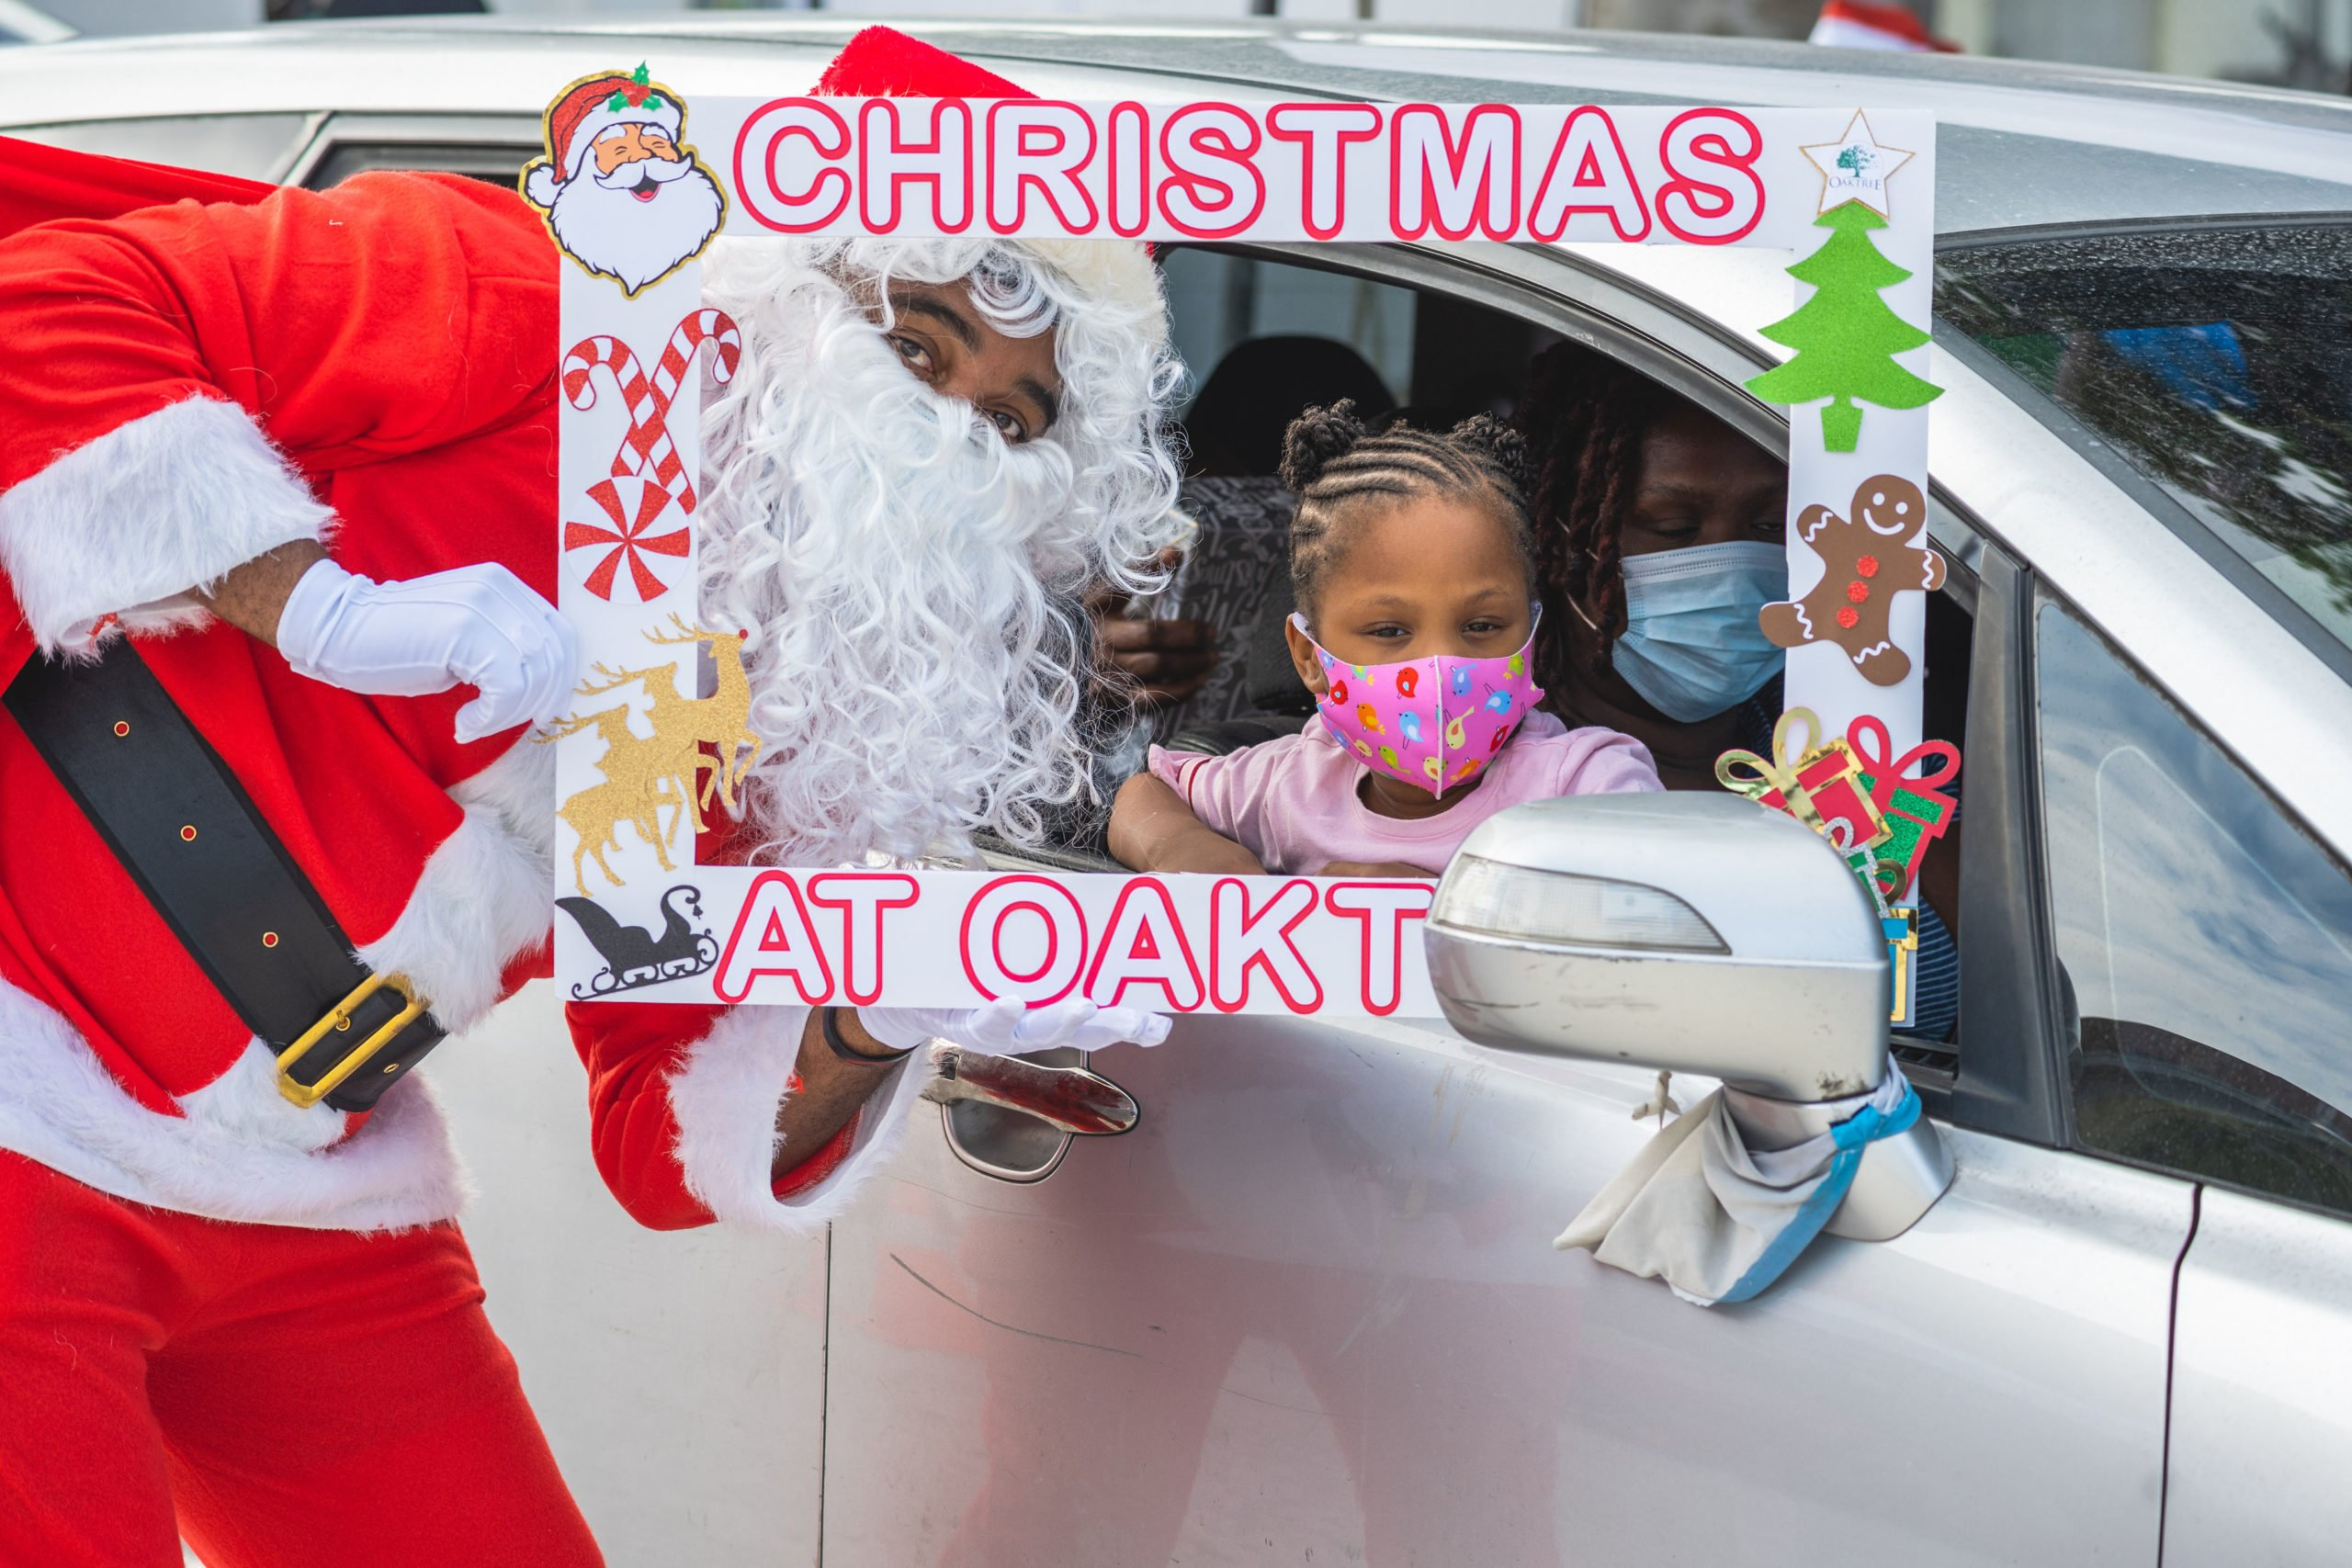 First Christmas at Oaktree event spreads joy to dozens of children